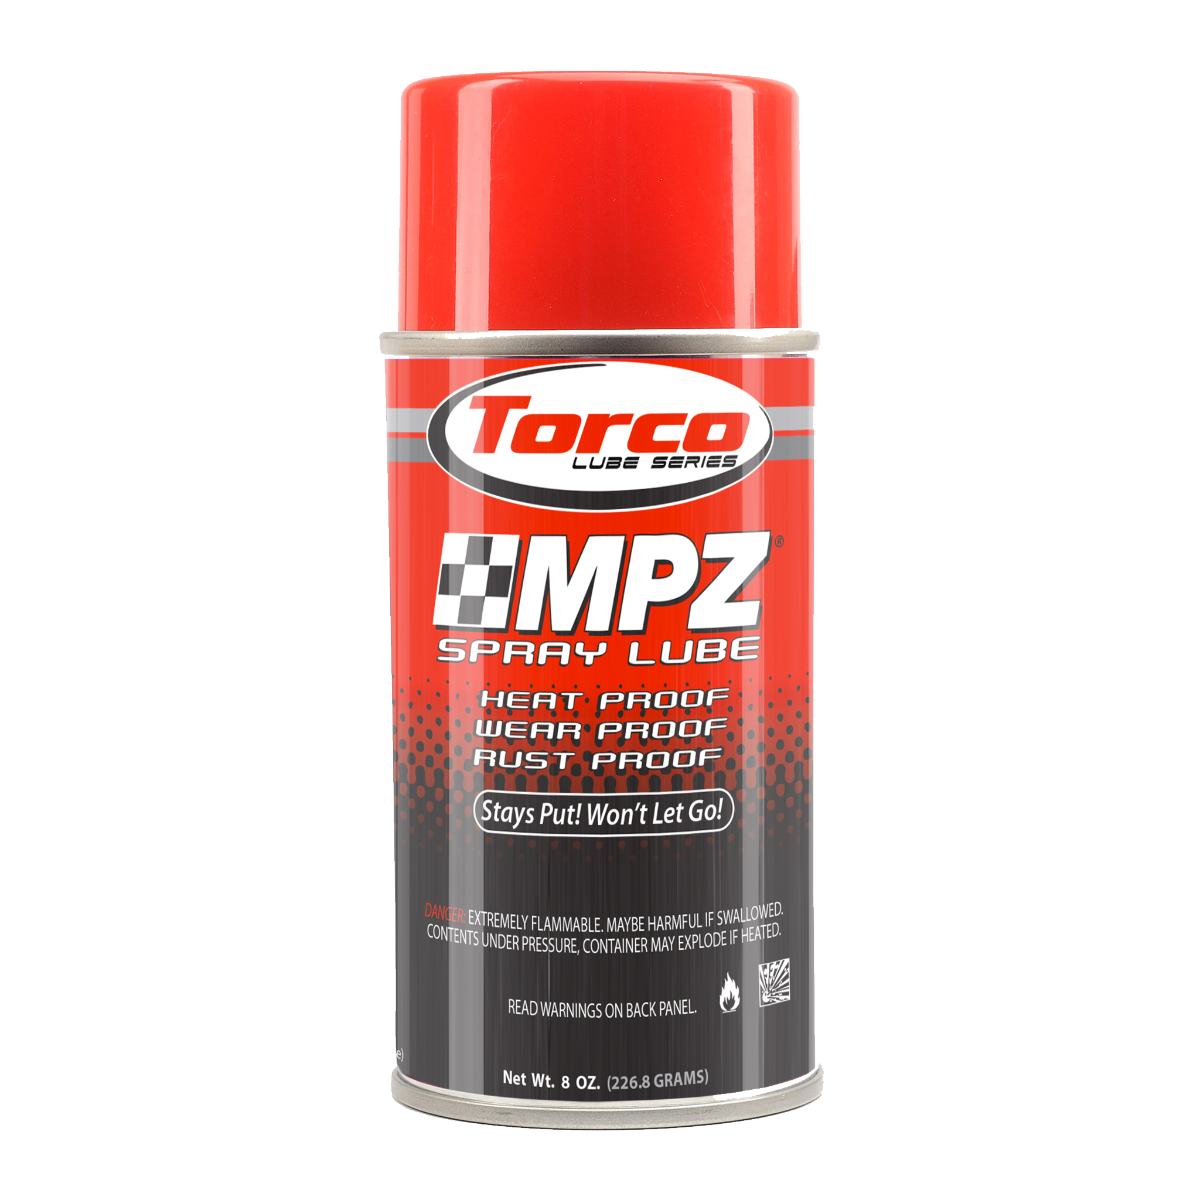 MPZ Spray Lube - TorcoUSA